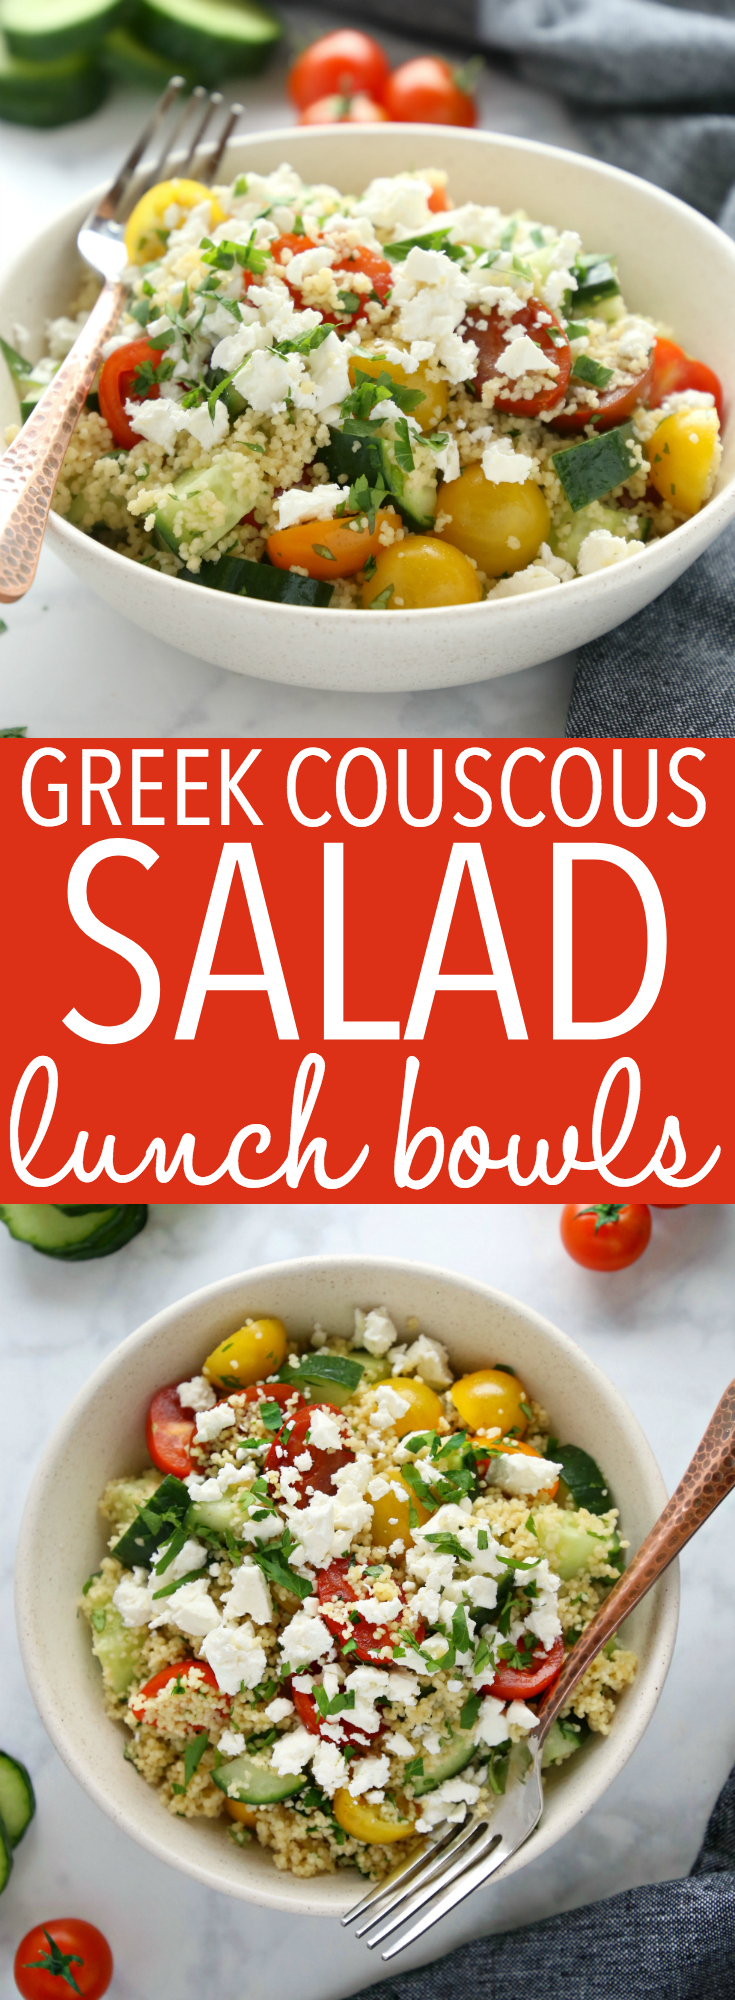 These Greek Couscous Salad Lunch Bowls are packed with veggies, making them the perfect healthy choice for lunch at home or work! Recipe from thebusybaker.ca! #mealprep #lunchprep #worklunch #greeksalad via @busybakerblog